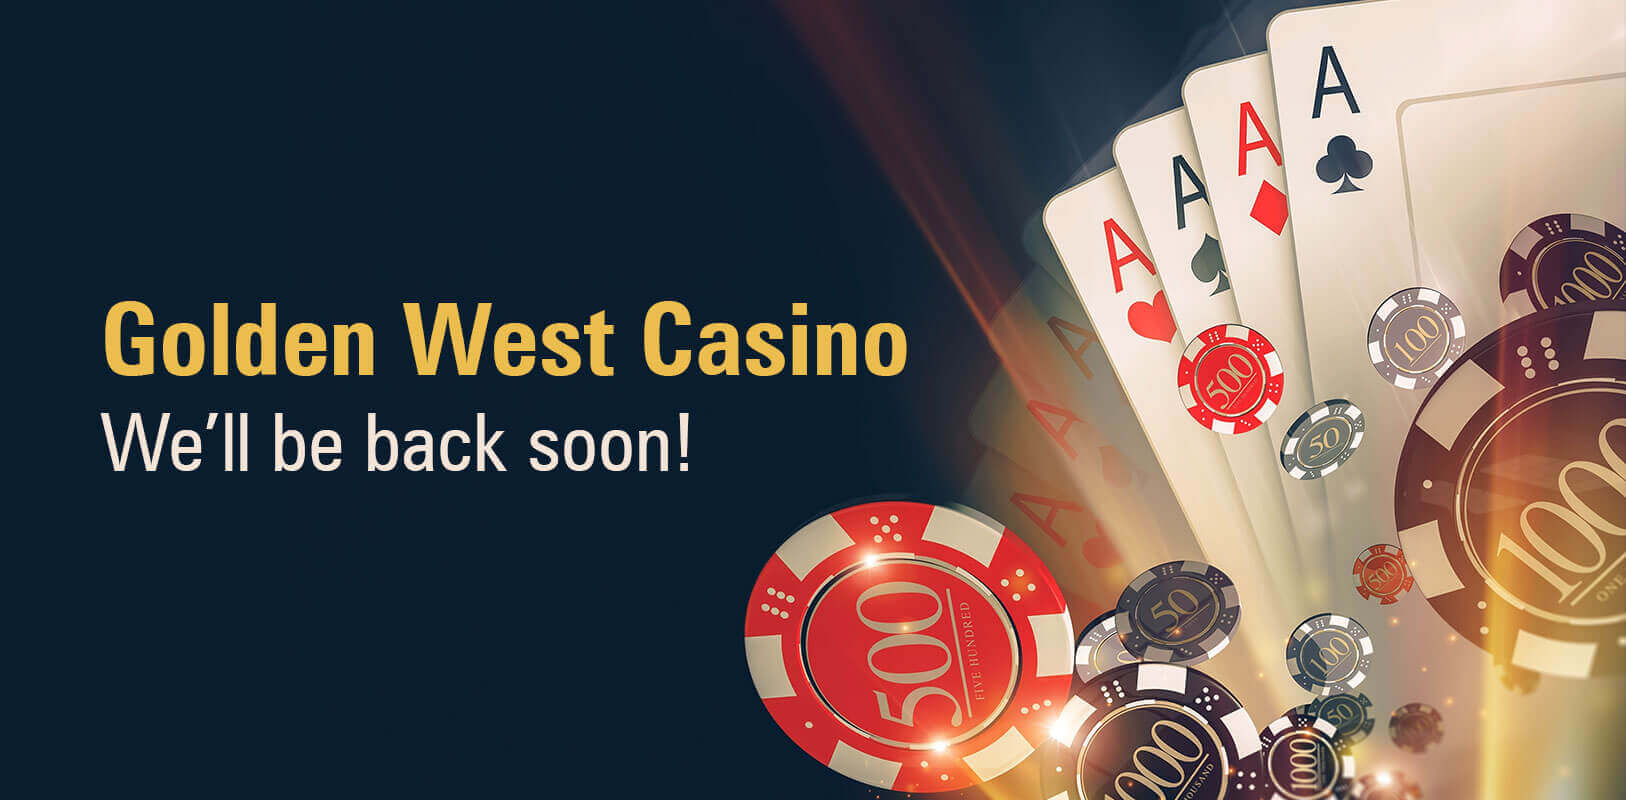 Golden West Casino - We